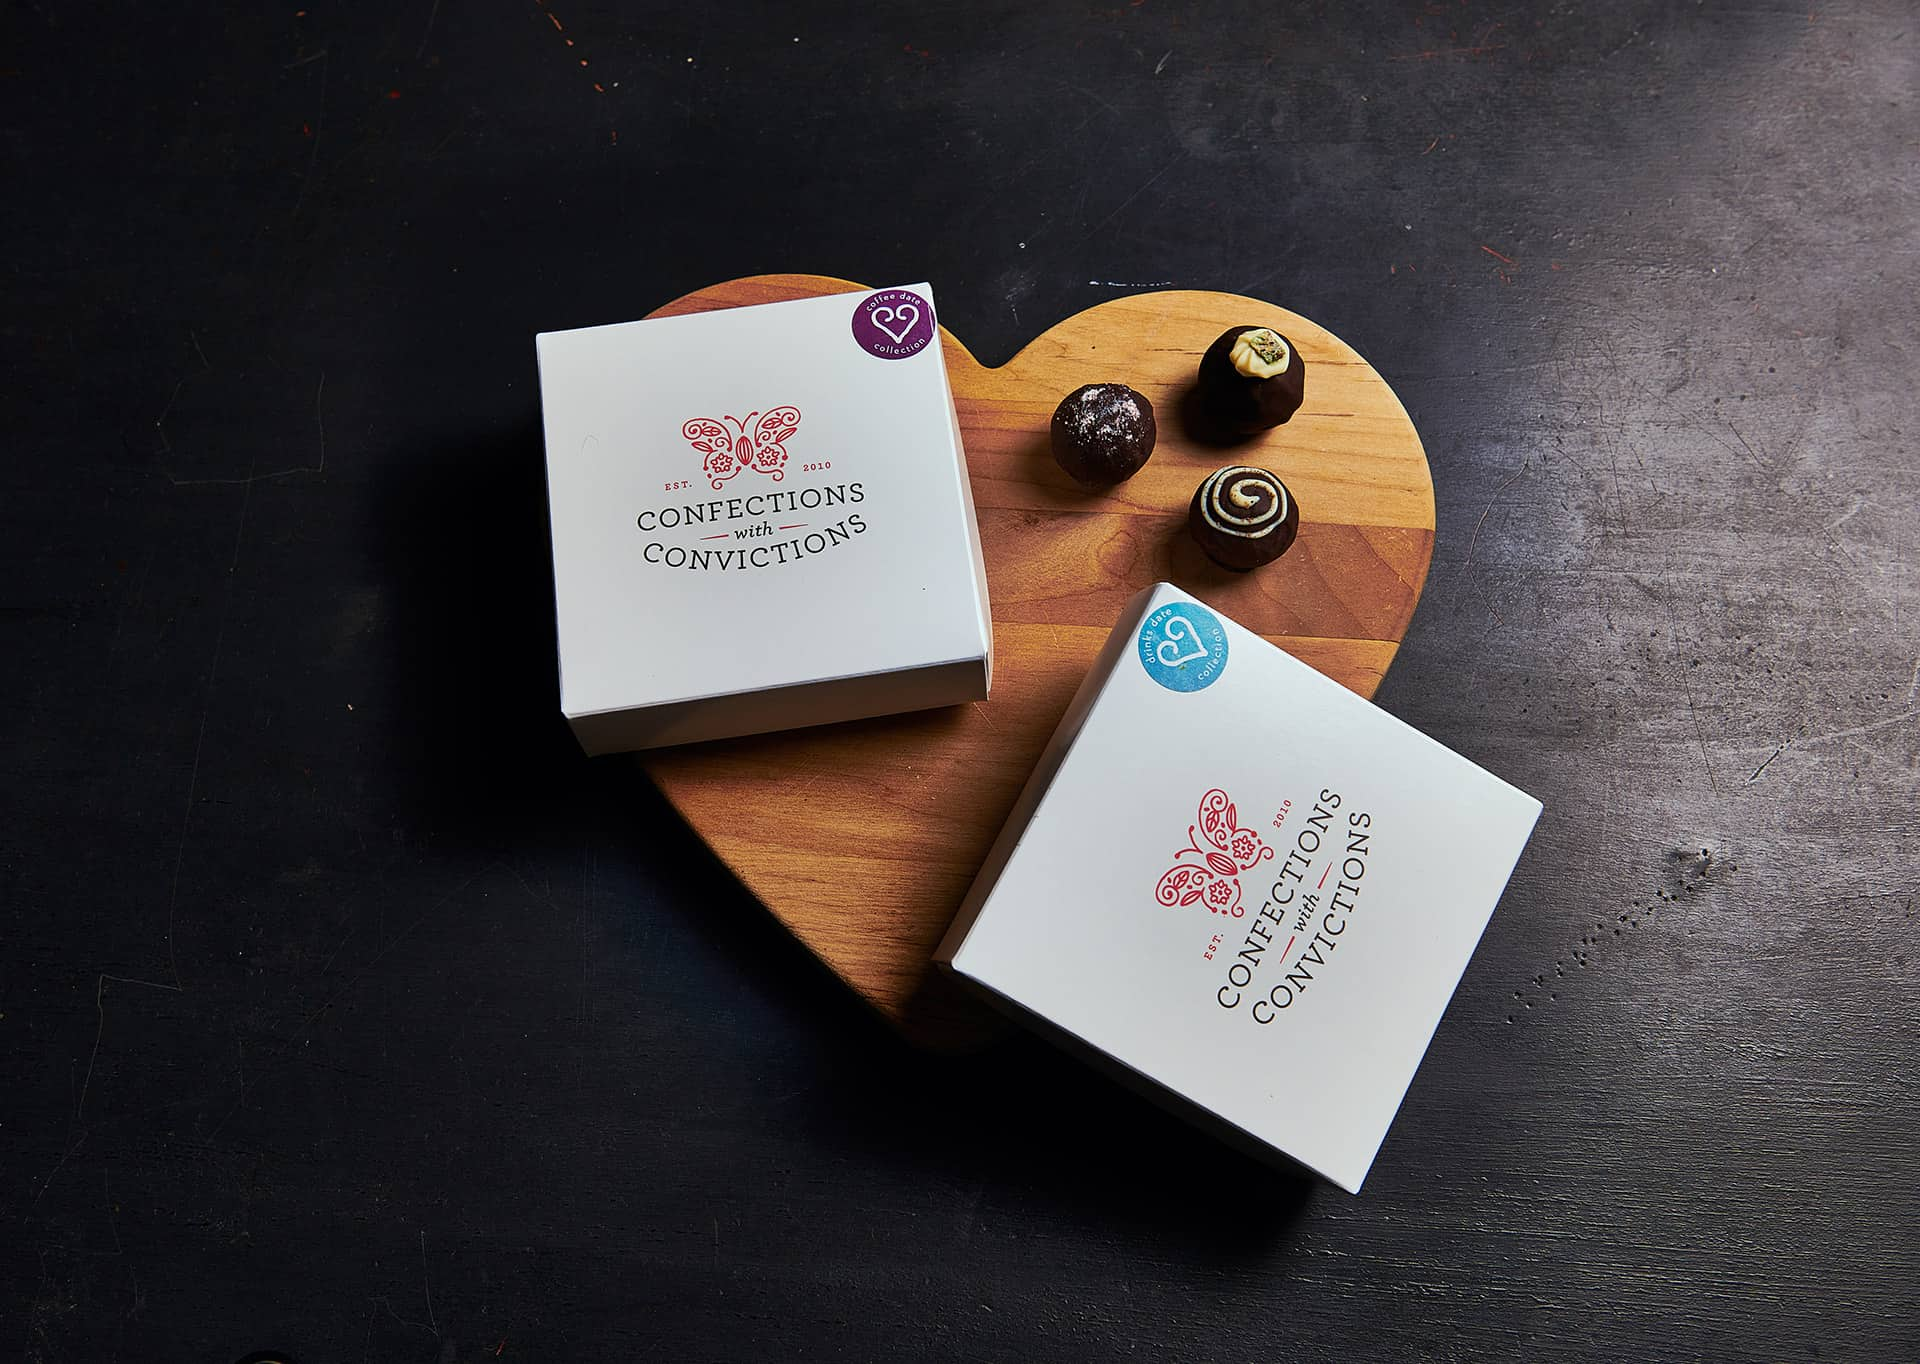 Confections with Convictions rebranding and identity design